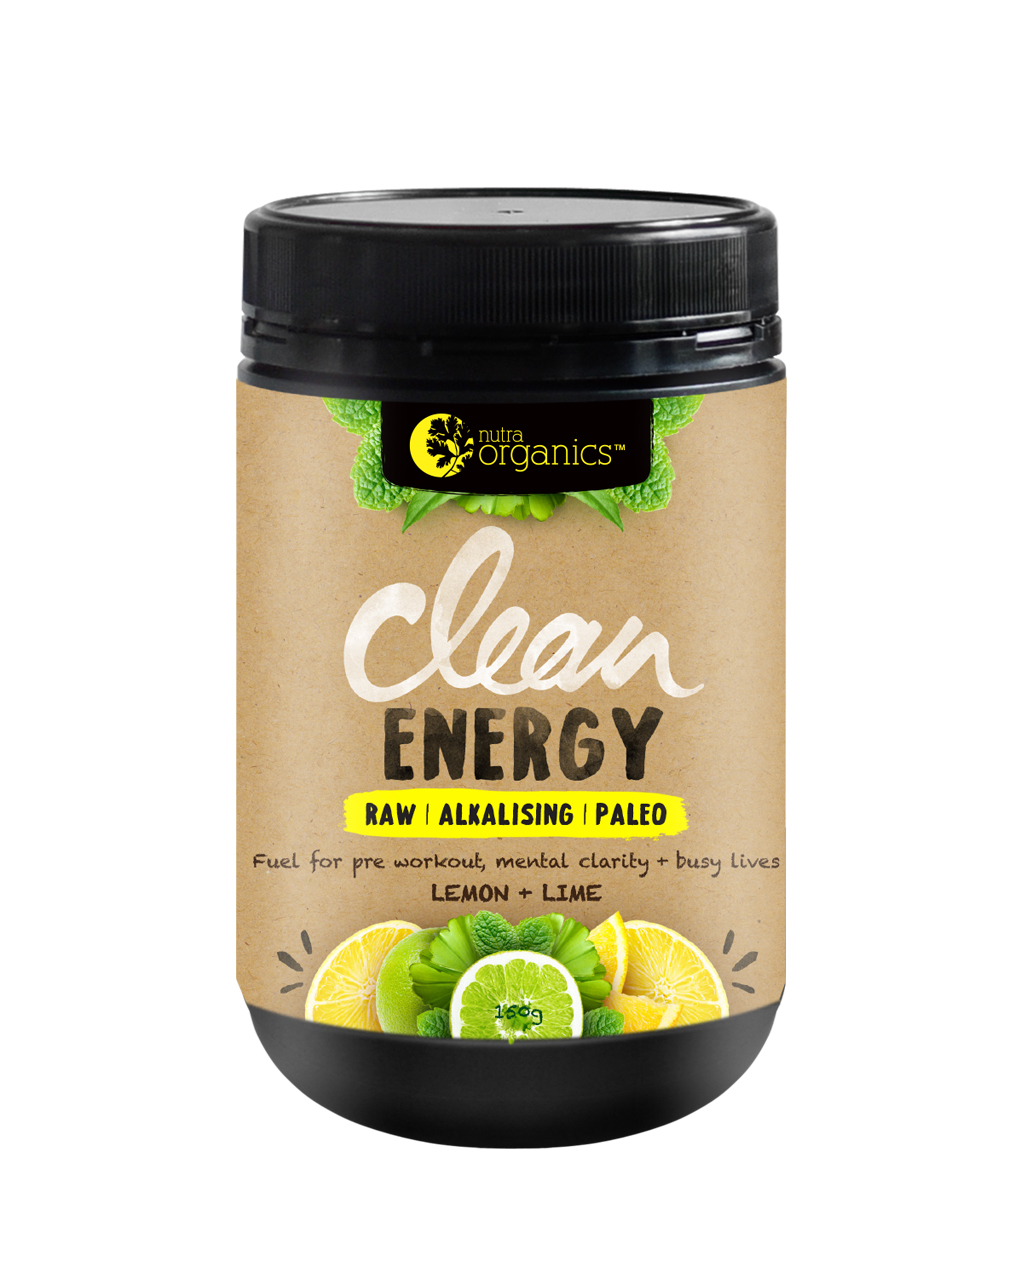 Clean-Energy-Lemon-Lime.jpg